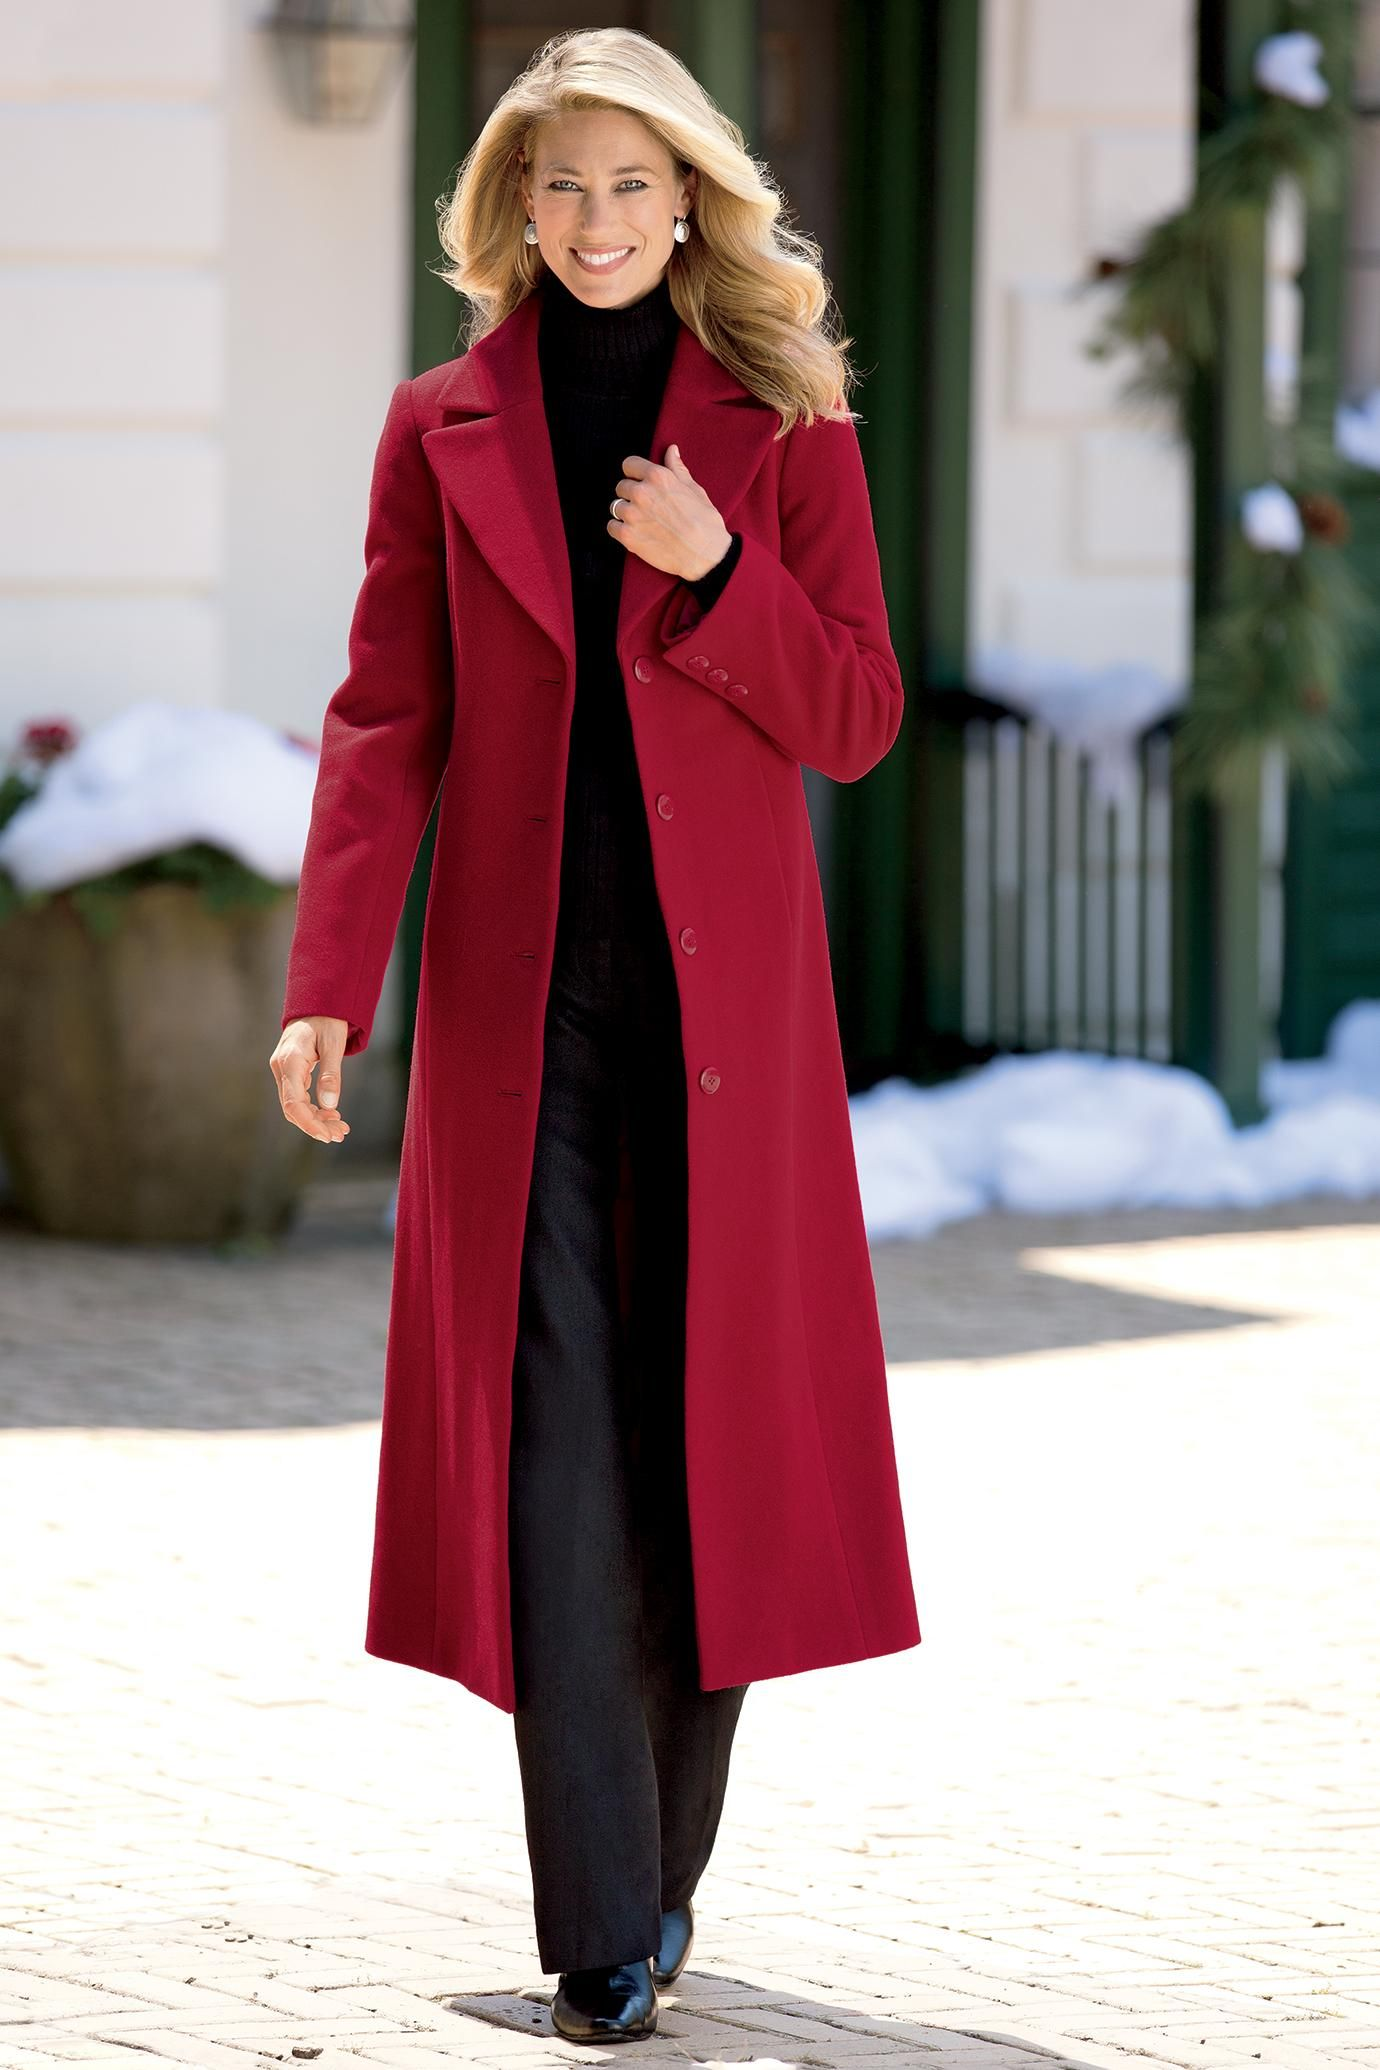 Shop Chadwicks online for Women's Classic Long Wool Coat, in ...